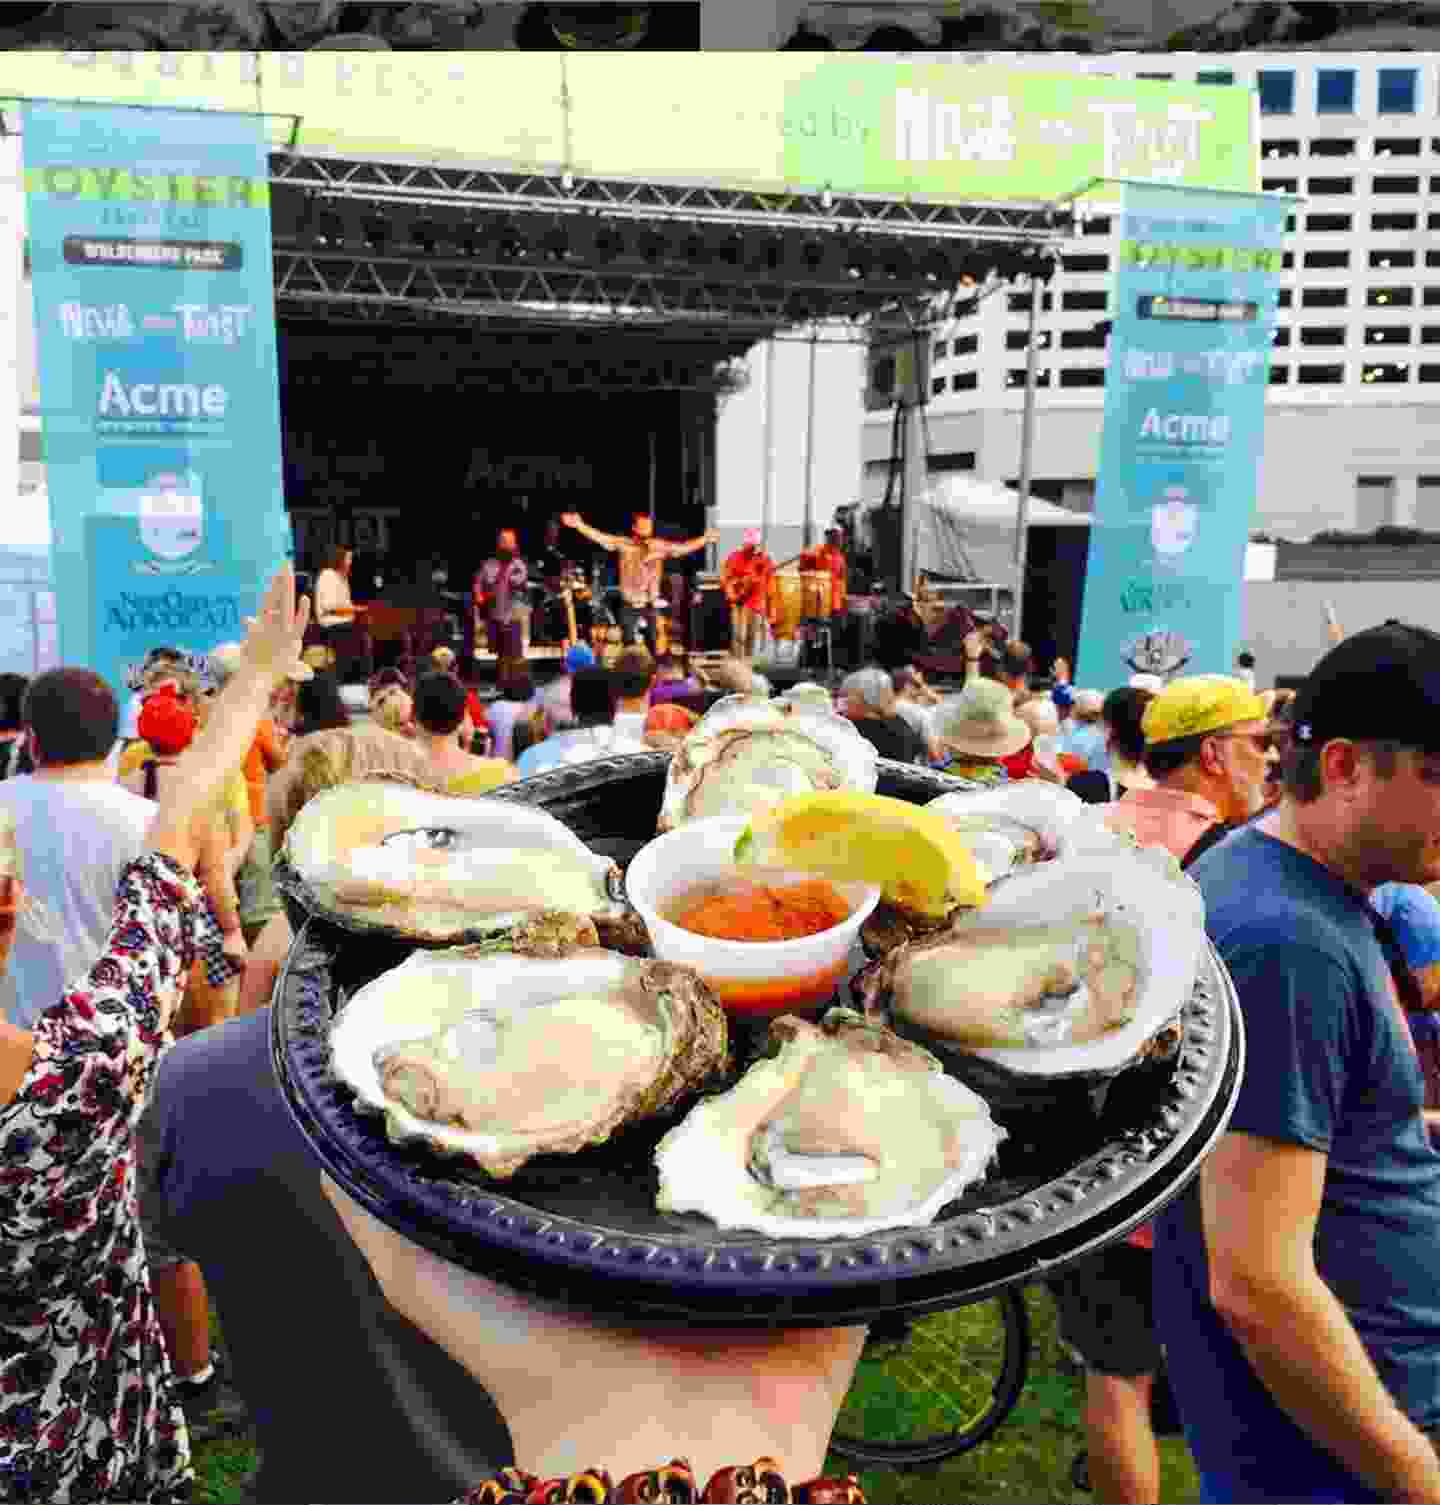 Oysters and music (nolaoysterfest)